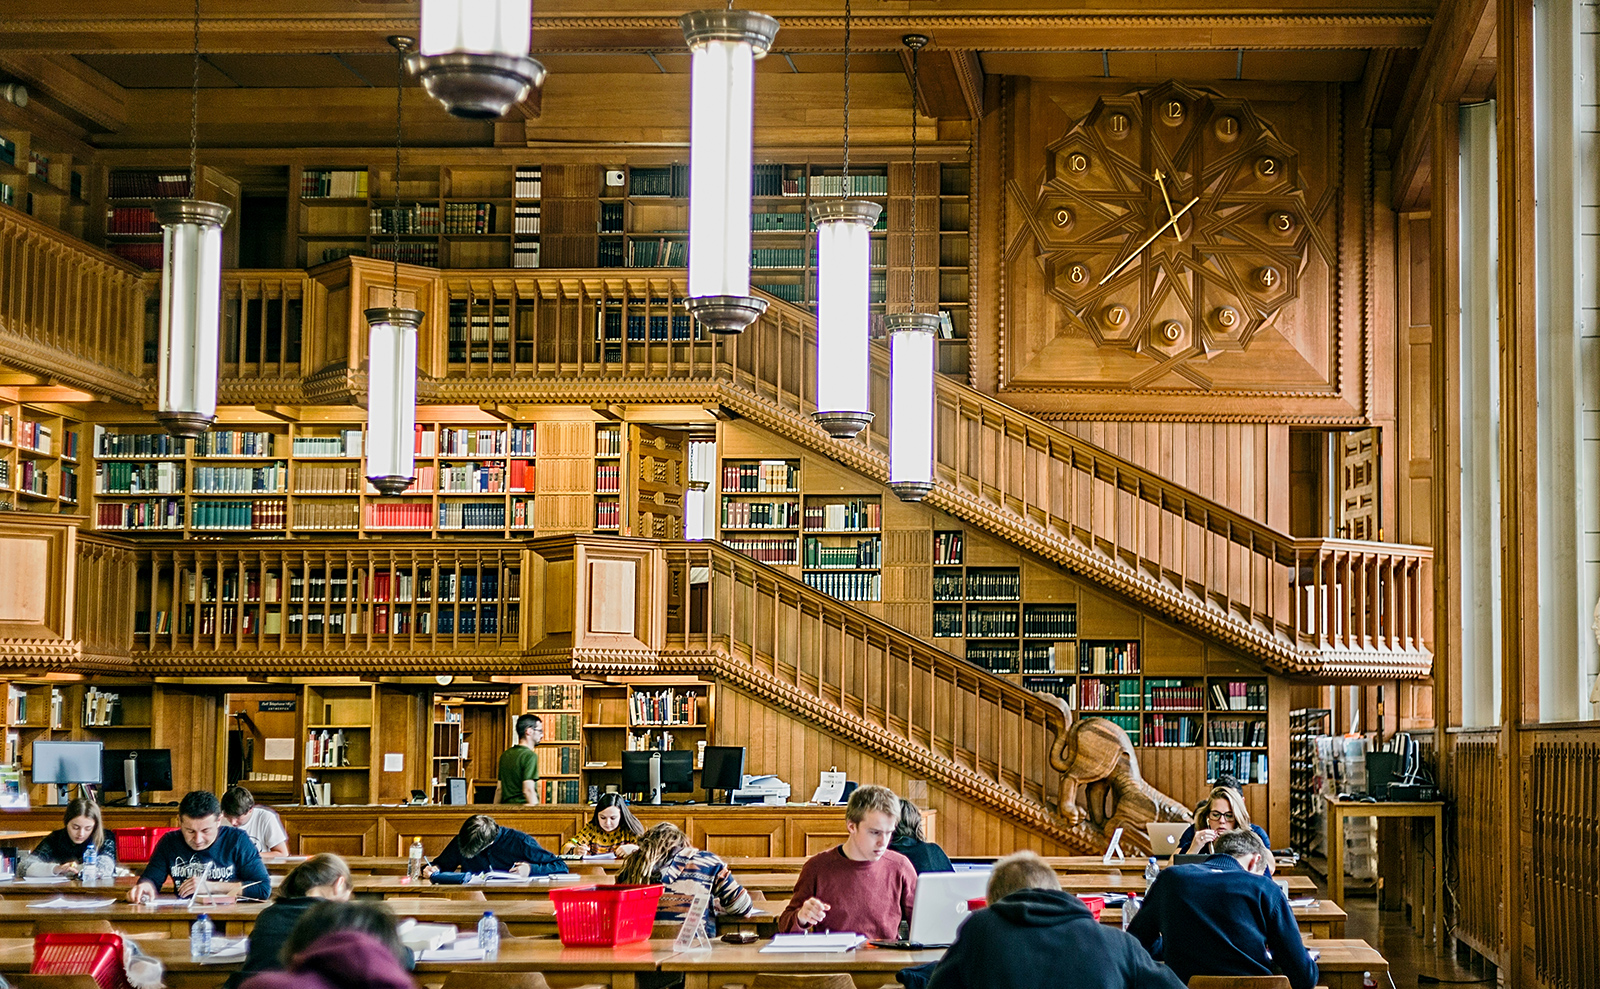 reading room in the library at the university of leuven in belgium